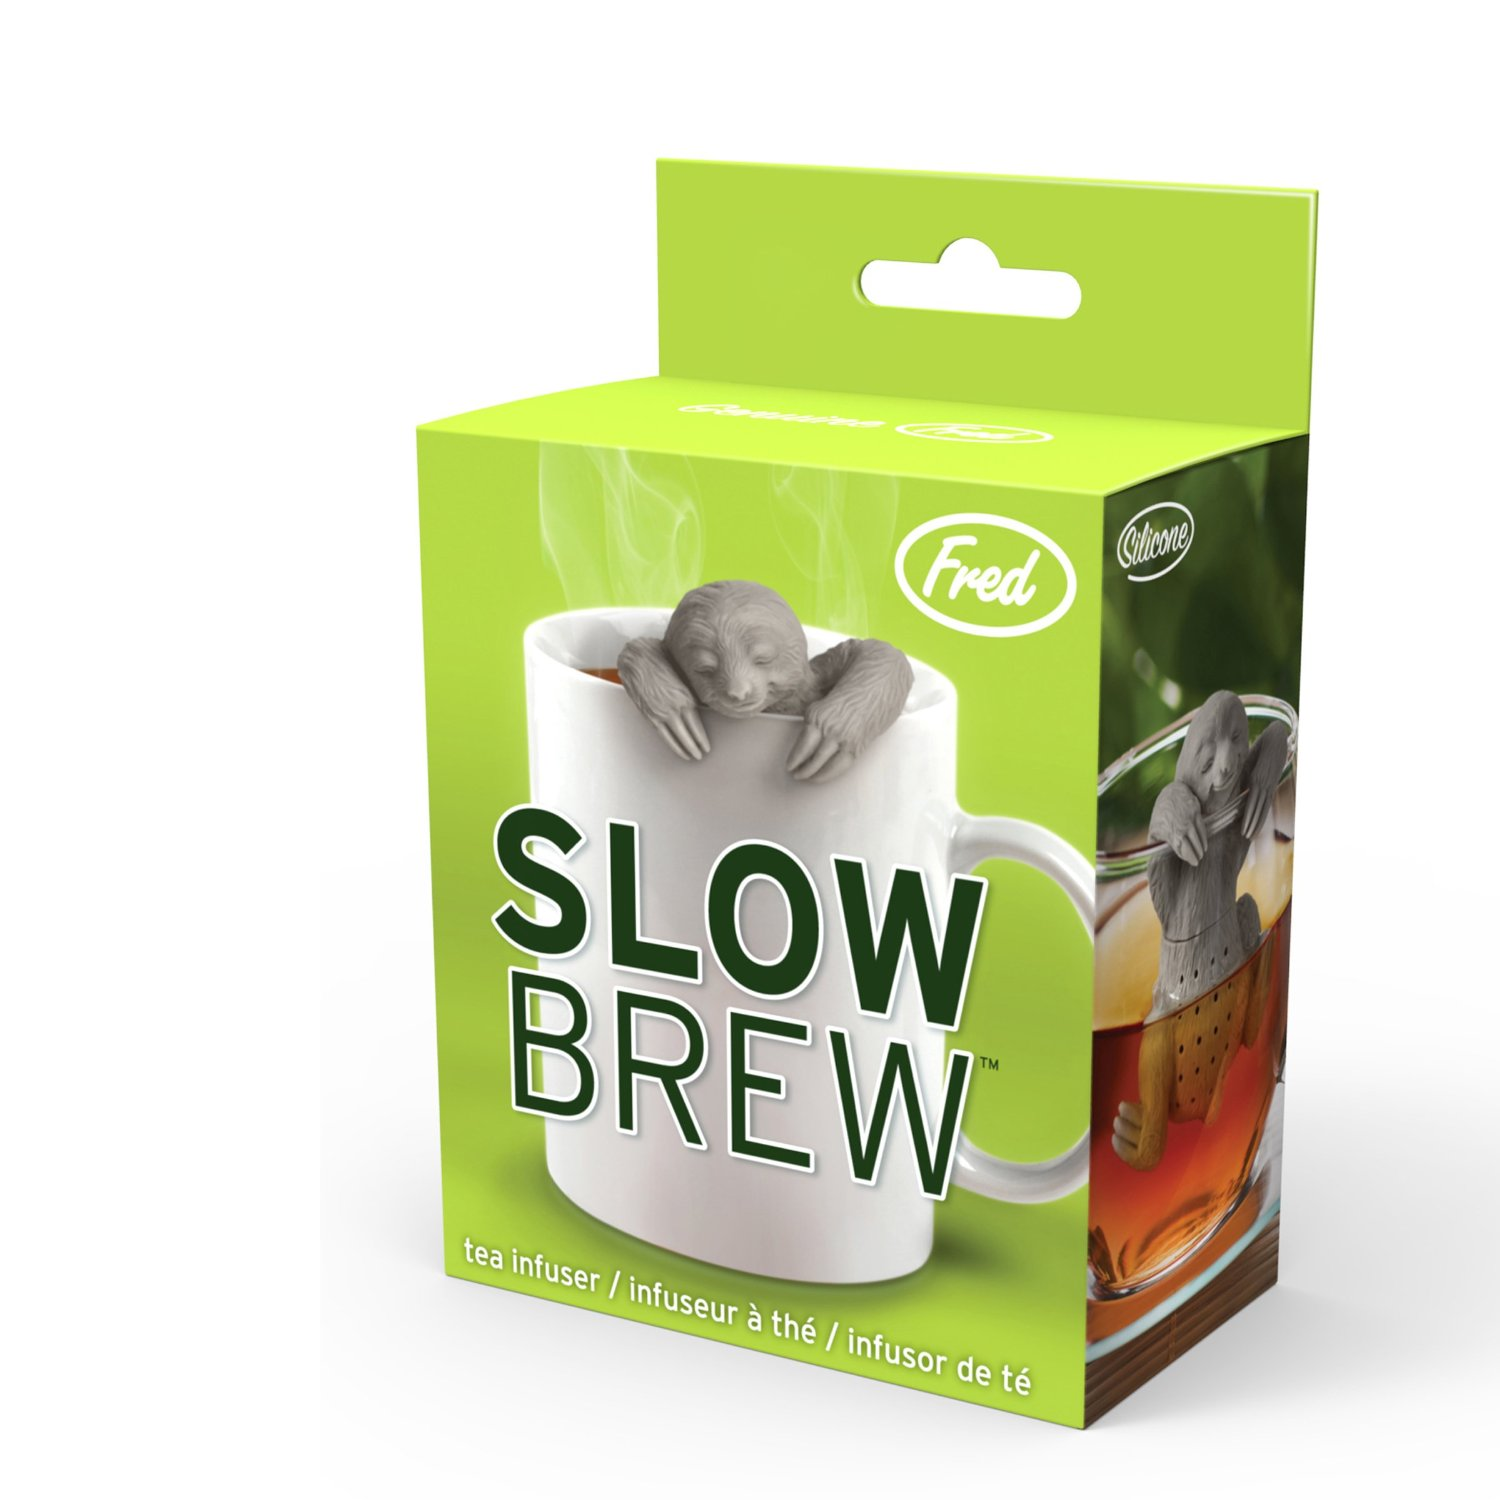 Slow brew box